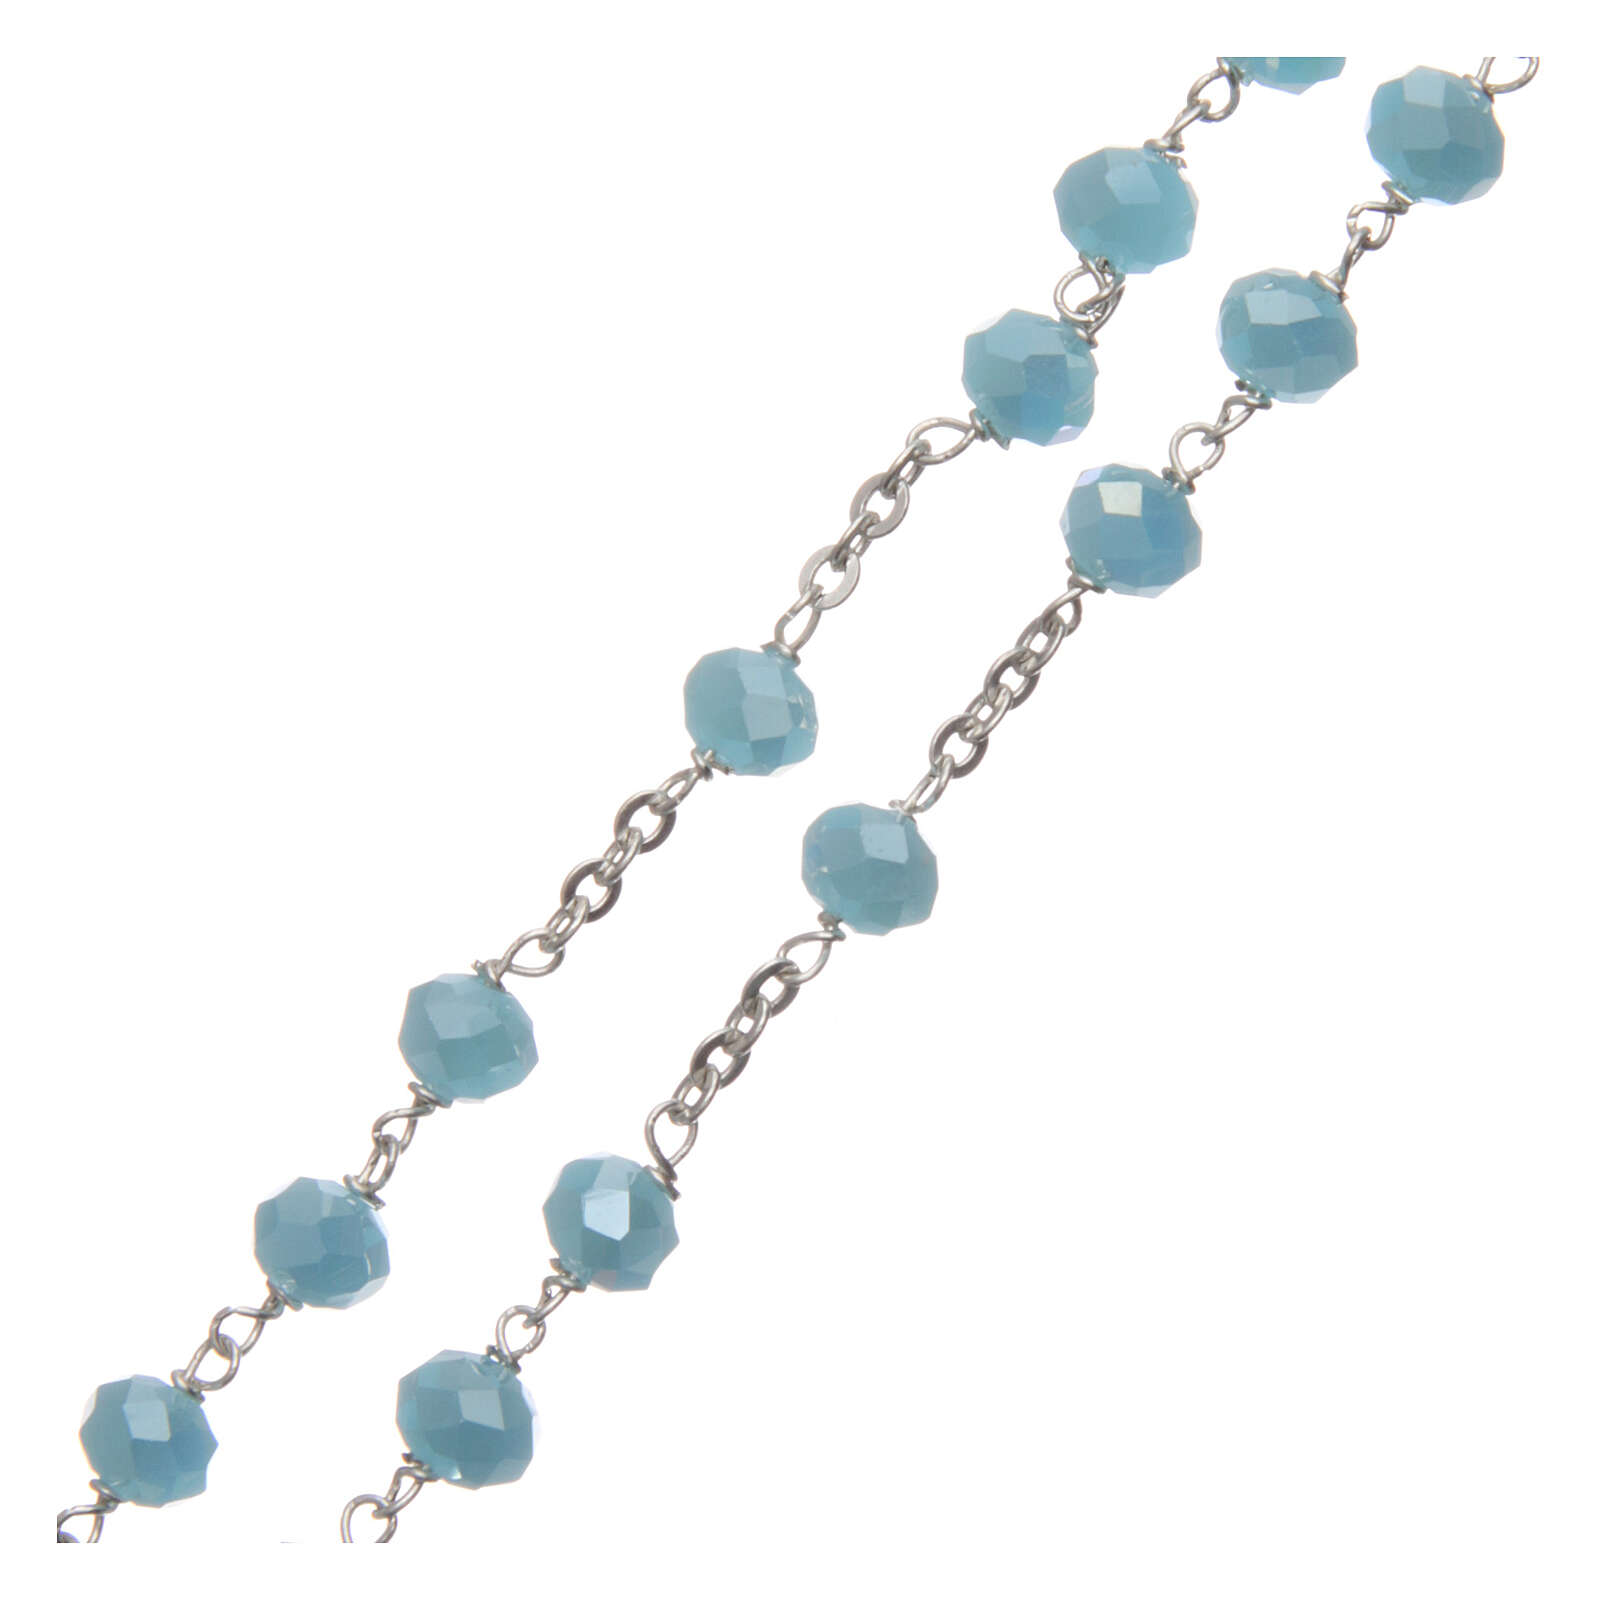 Crystal rosary with matte beads 6 mm 925 silver chain 4